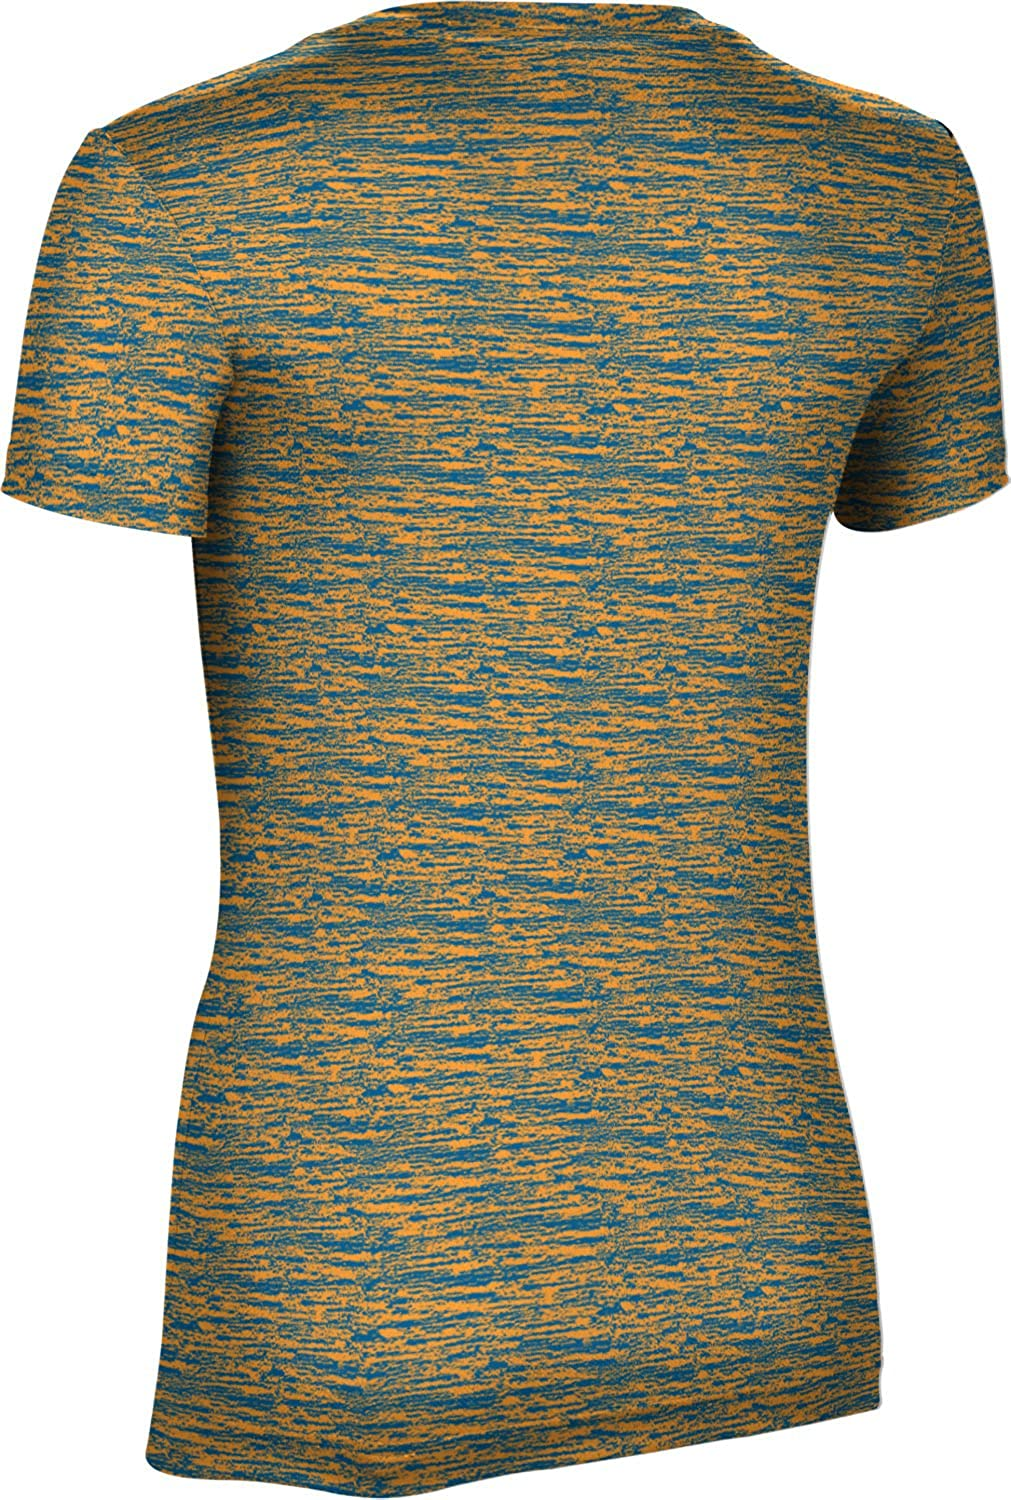 ProSphere Women's Langley AFB Military Brushed Tech Tee